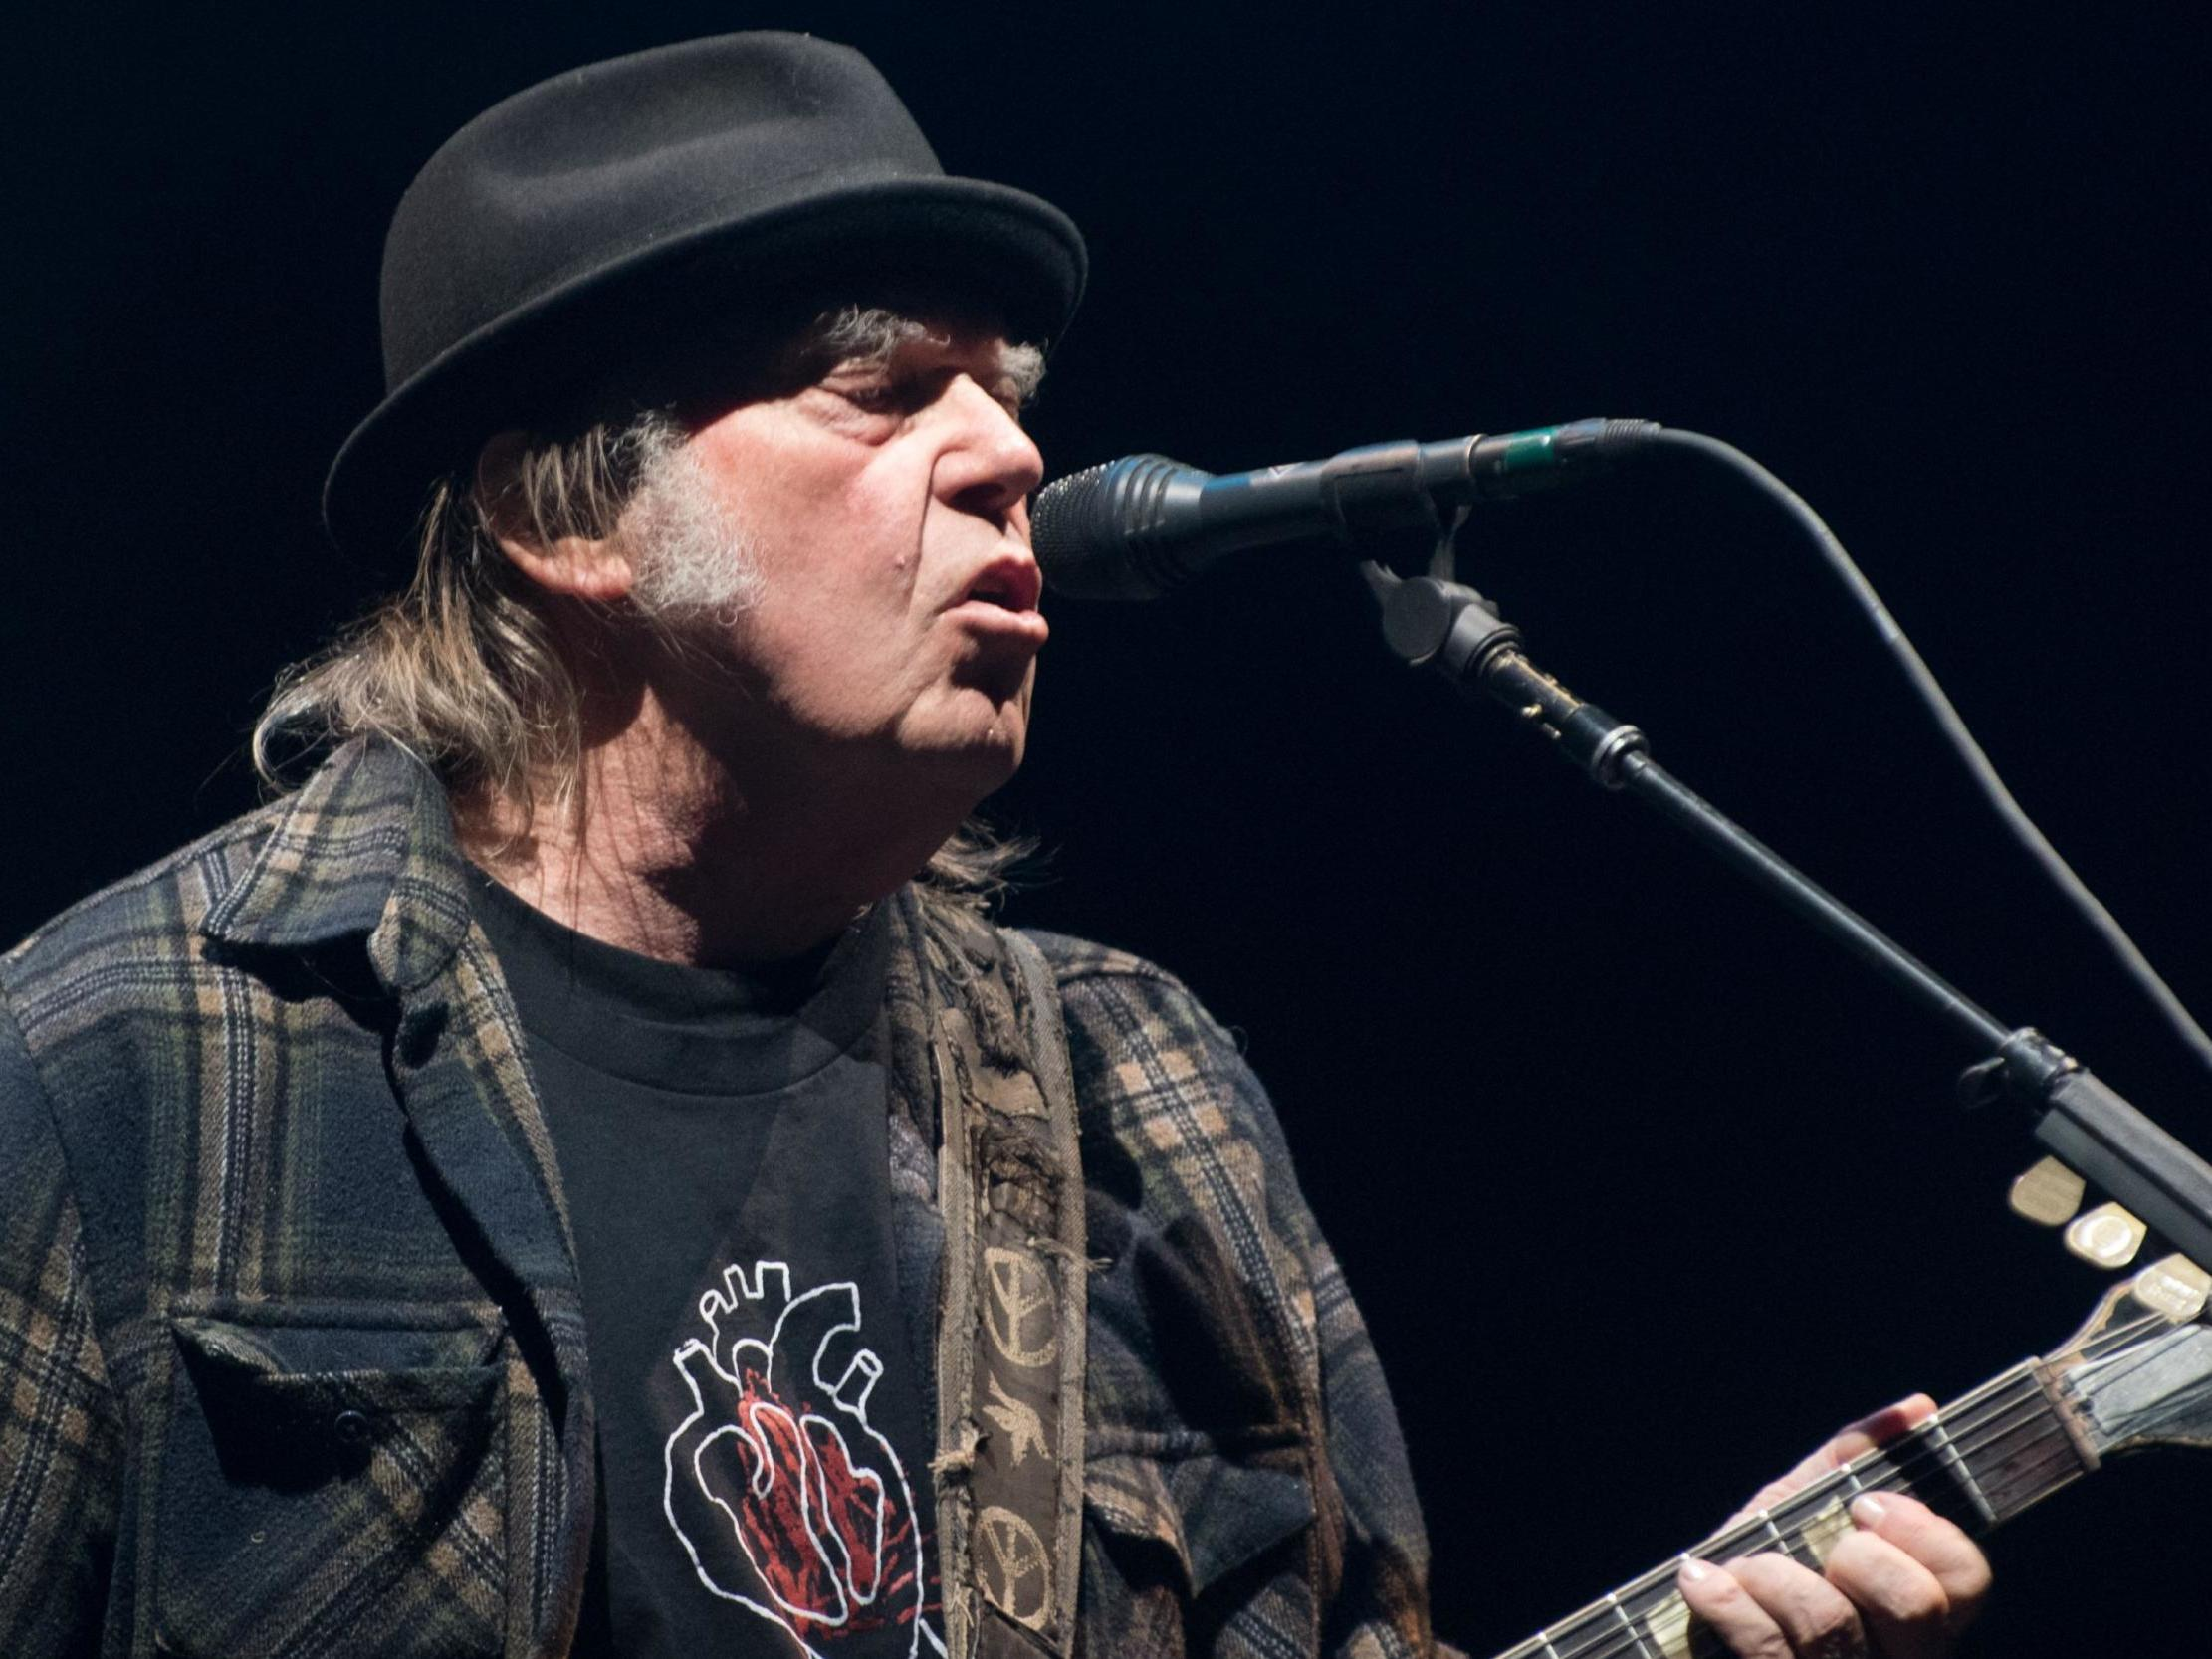 Neil Young's US citizenship delayed over cannabis use